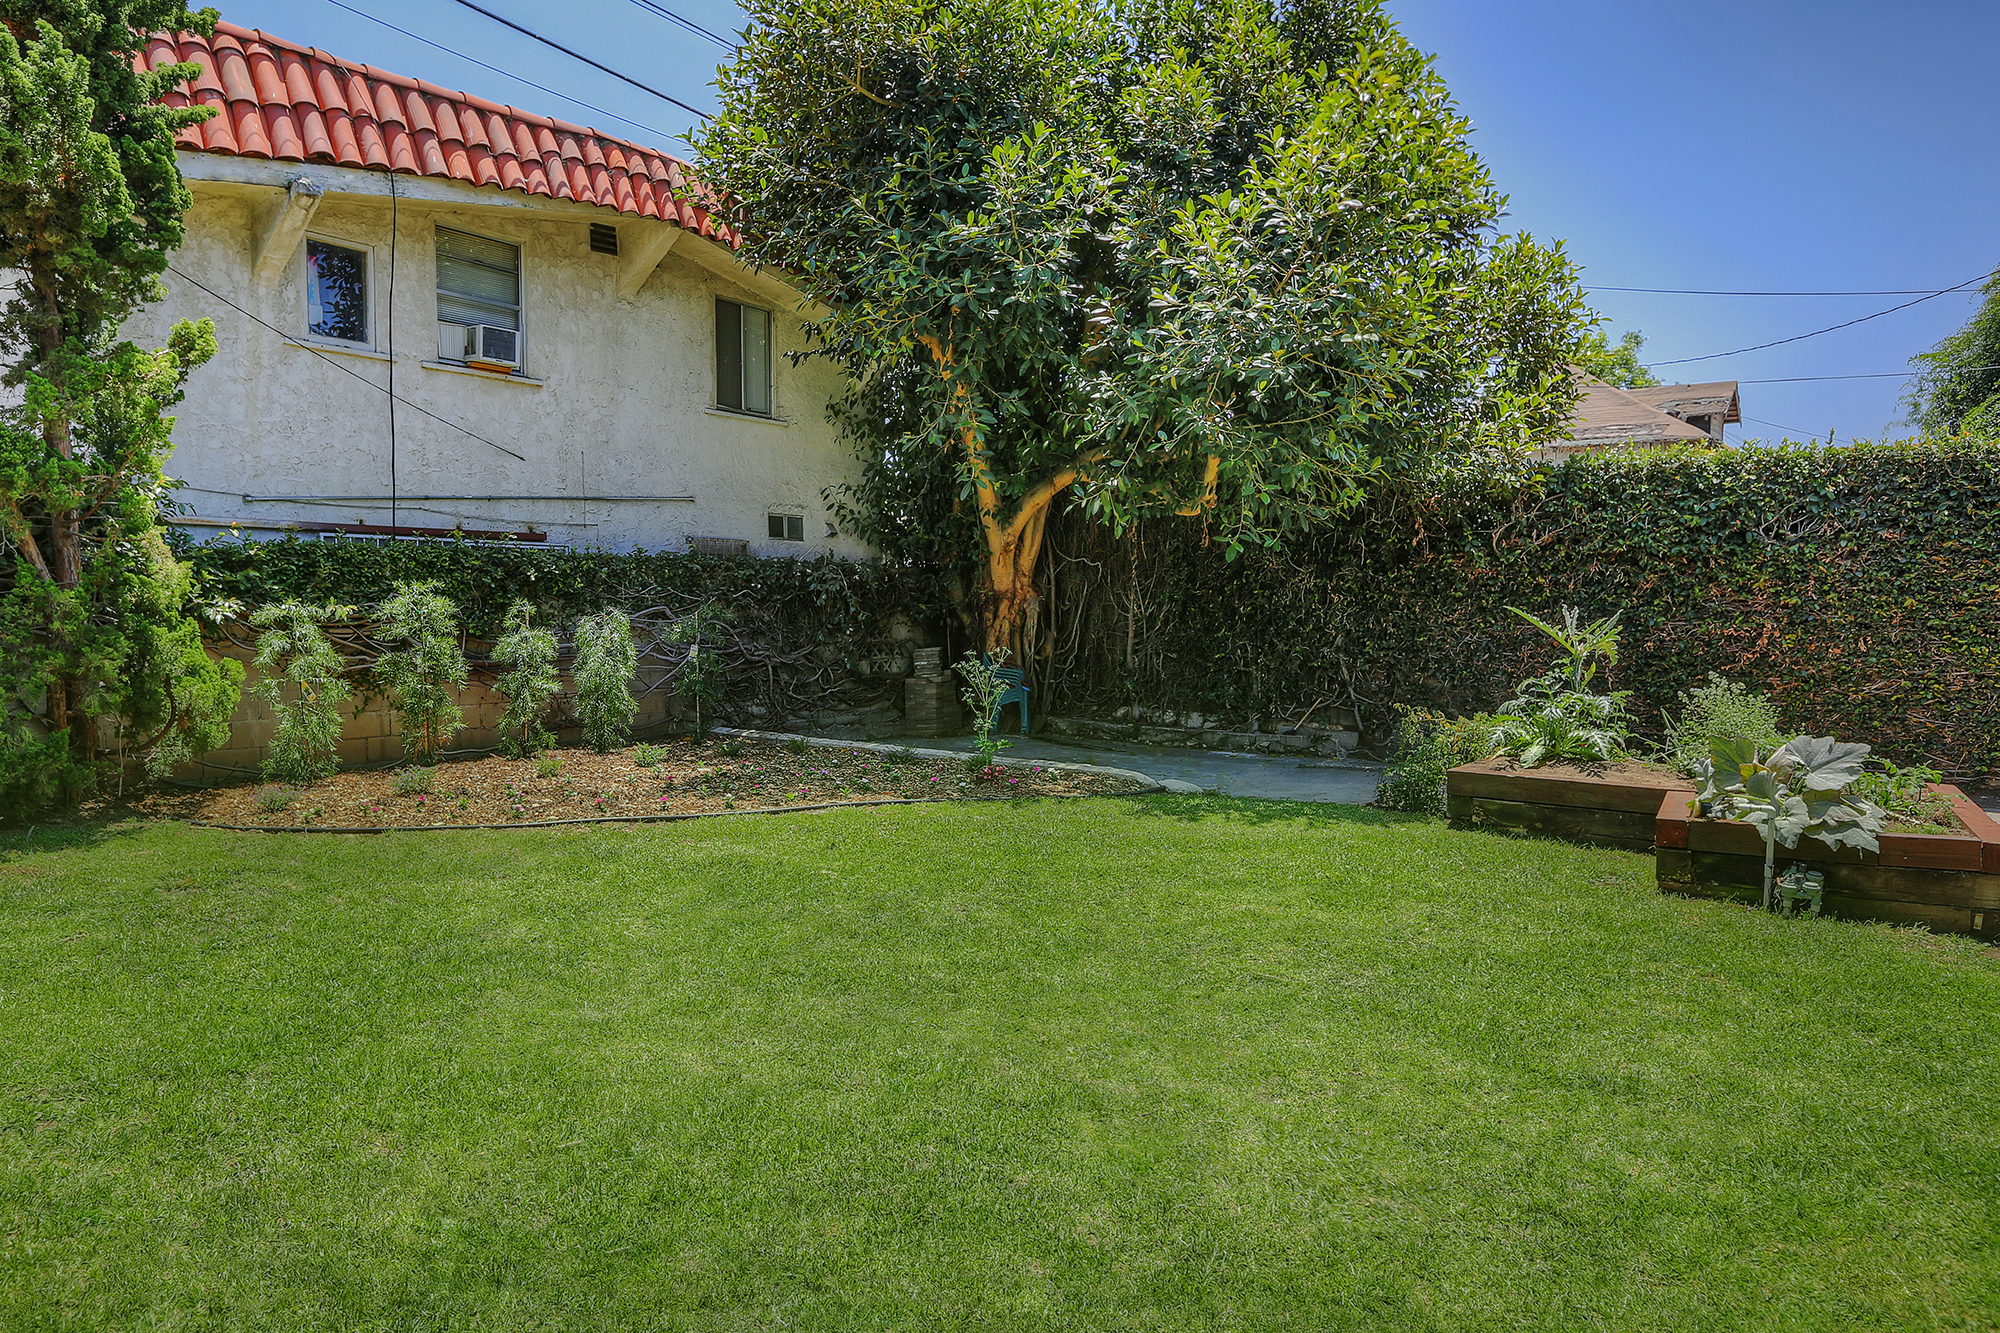 Whether your thing is gardening, croquet, badminton or picnics, the large, grassy backyard is ready for any of them. Or all of them!